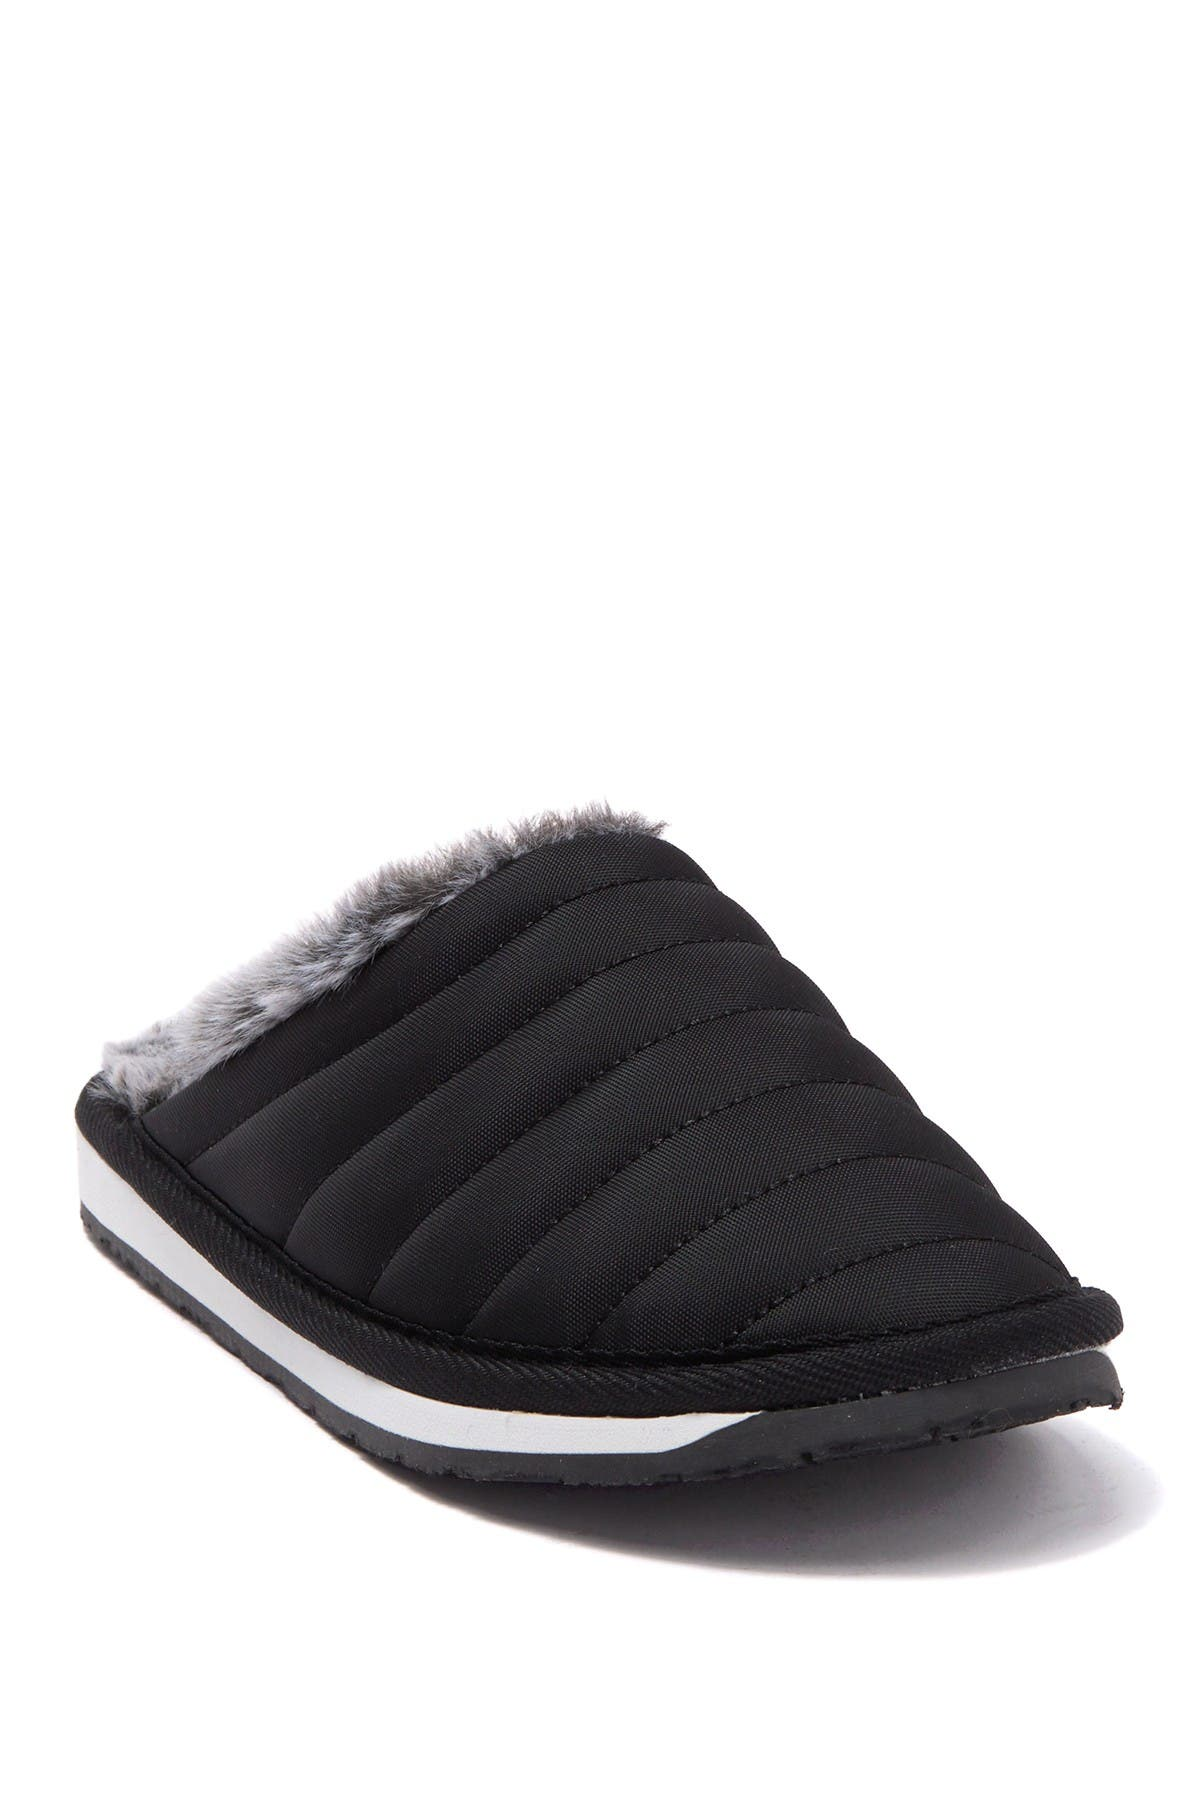 Image of Minnetonka Quilted Traditional Faux Fur Lined Scuff Slipper